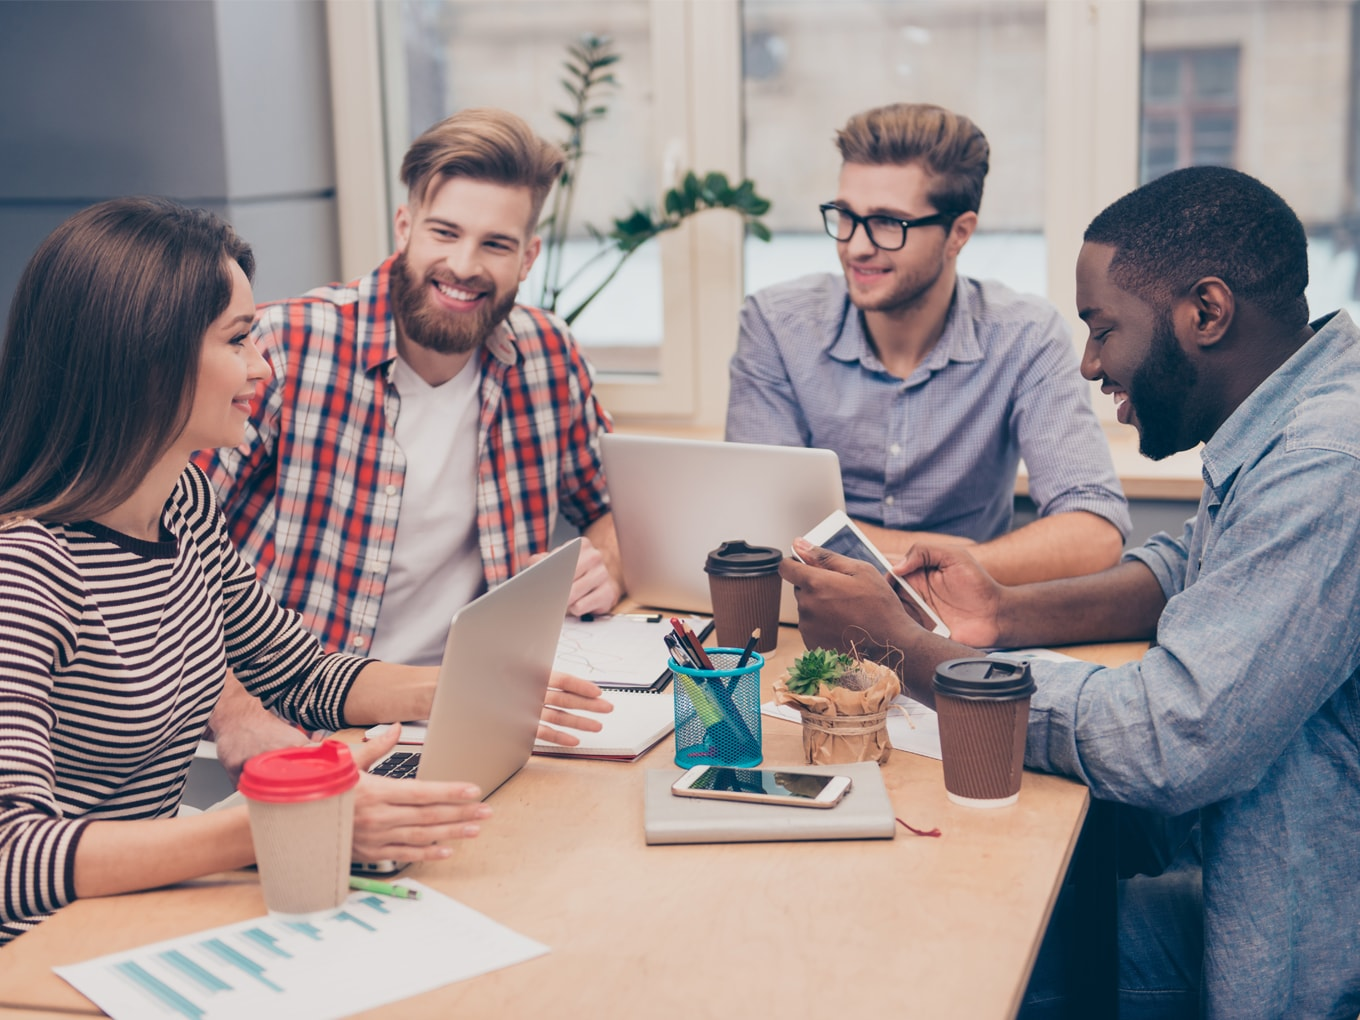 How To Build Great Company Culture